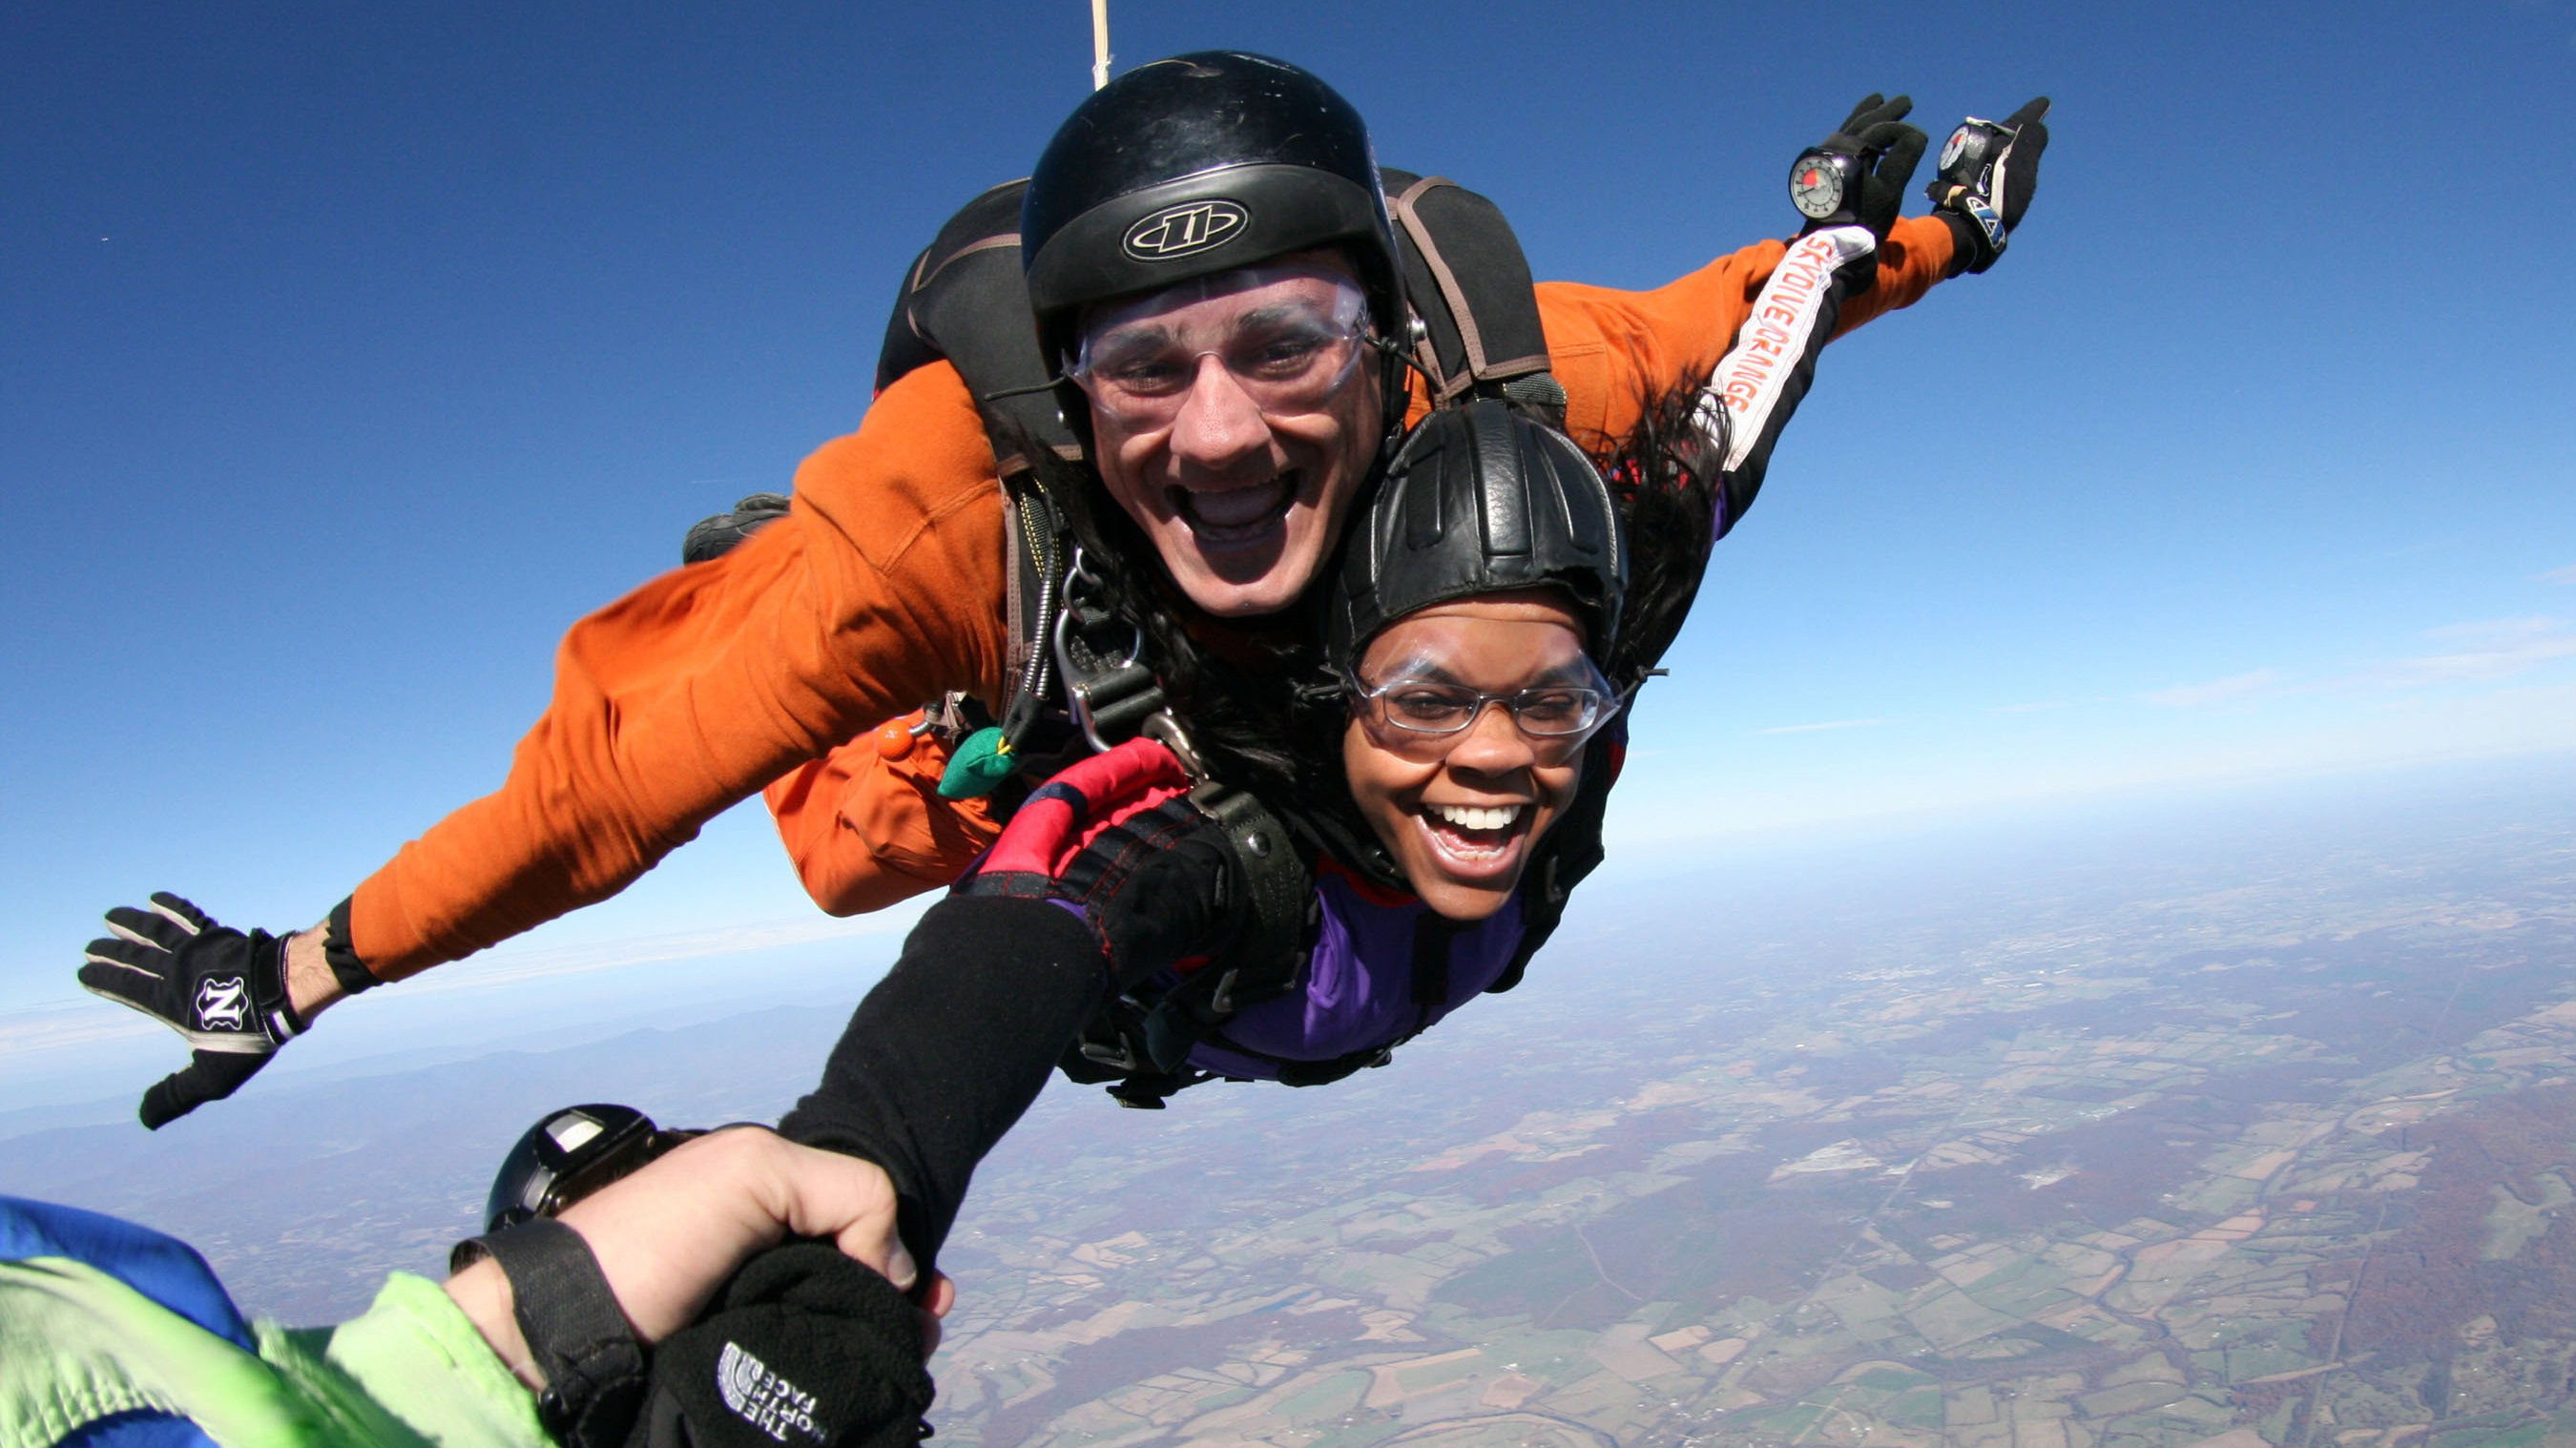 The life-changing sport of skydiving is more popular than ever! Visit www.uspa.org to find a skydiving center near you!.